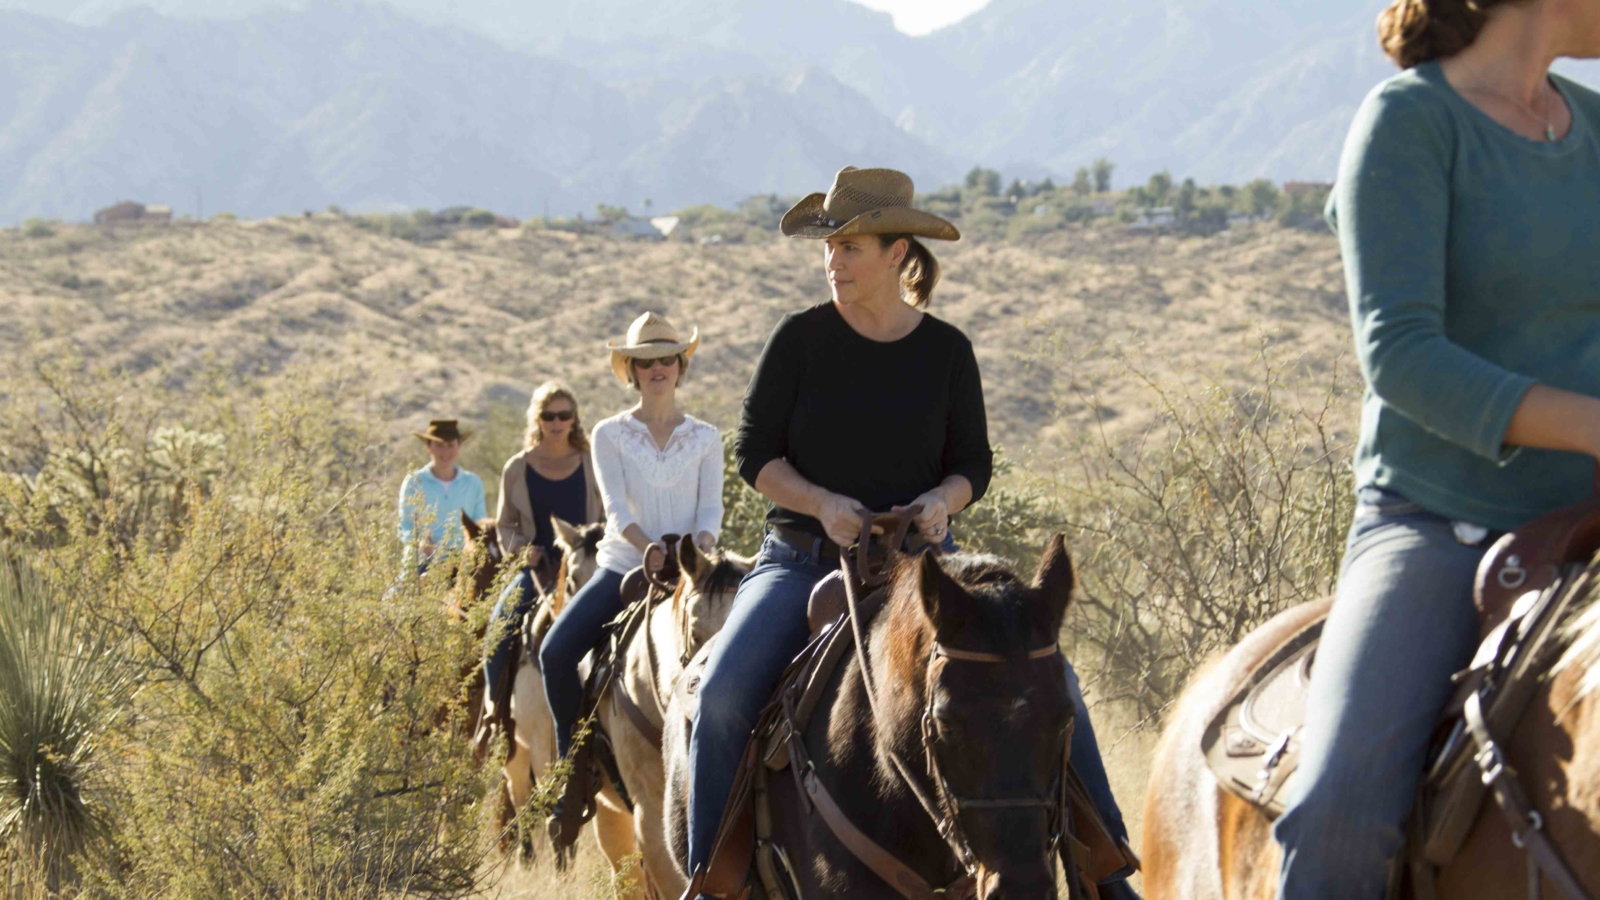 equestrians riding in tucson, arizona